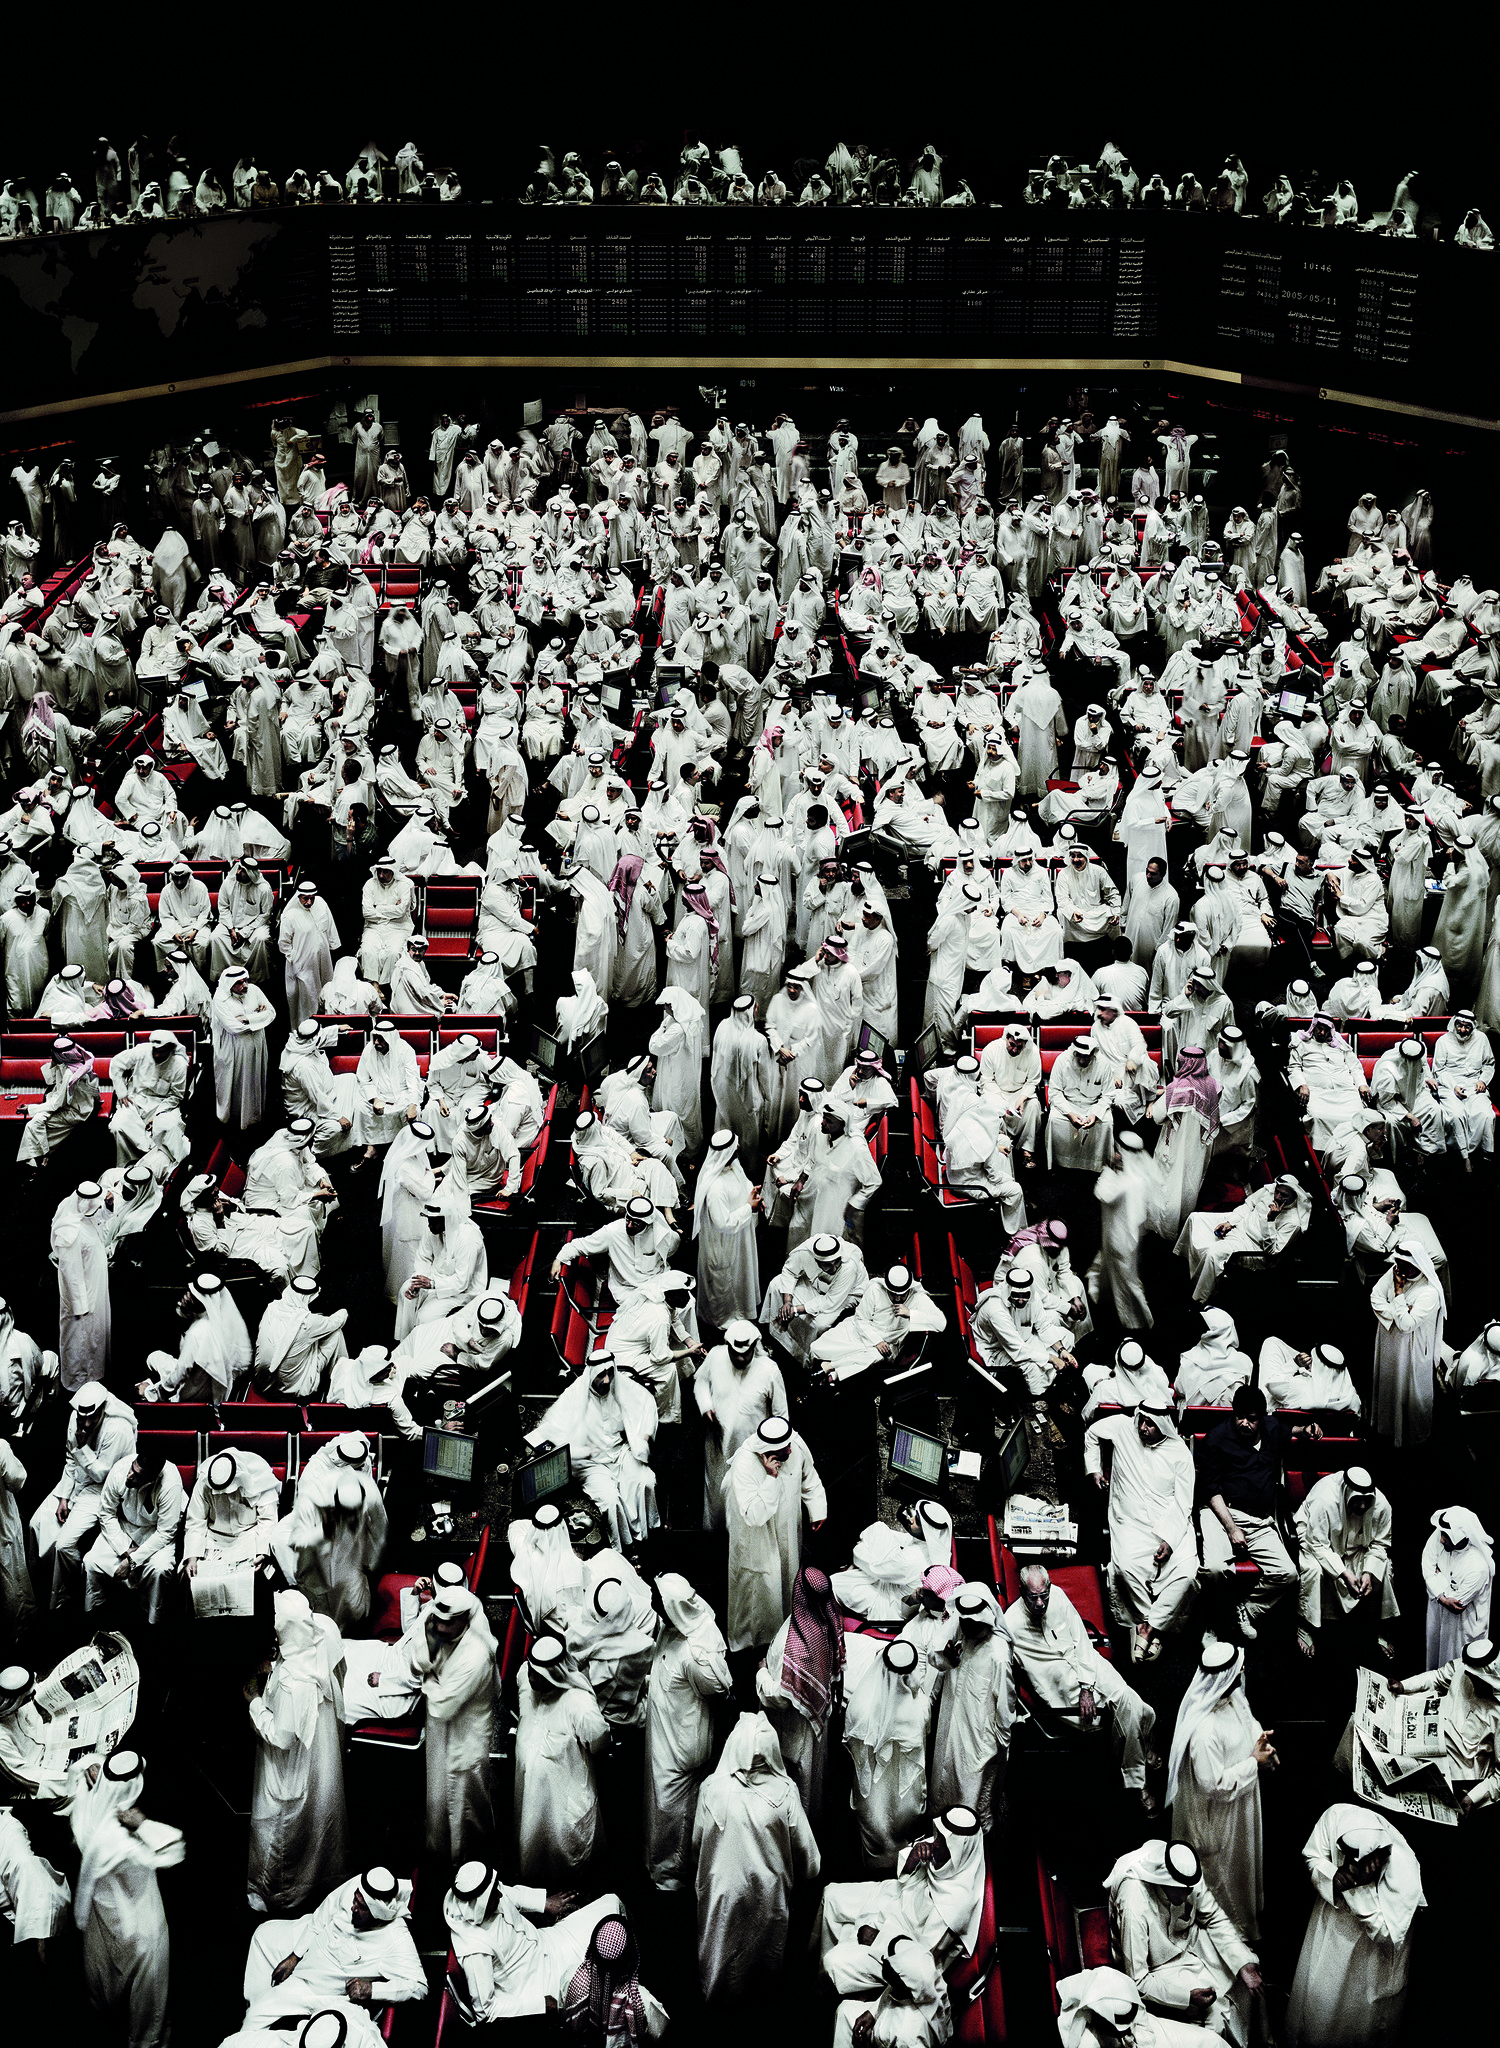 """""""Kuwait Stock Exchange I, 2007"""" by Andreas Gursky."""